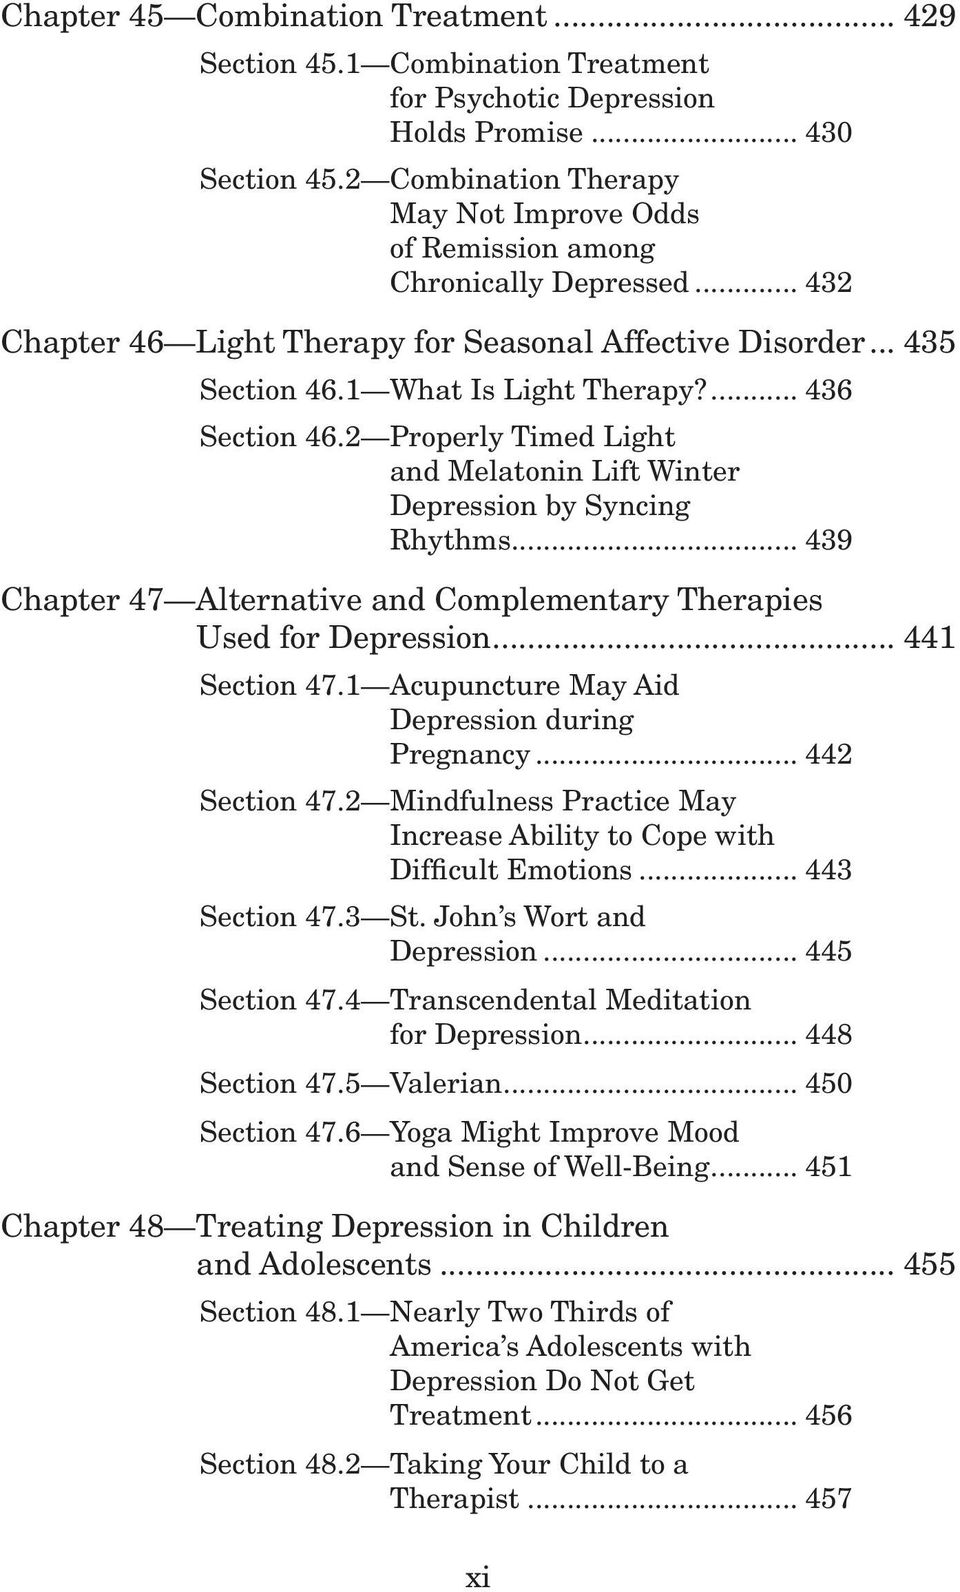 ... 436 Section 46.2 Properly Timed Light and Melatonin Lift Winter Depression by Syncing Rhythms... 439 Chapter 47 Alternative and Complementary Therapies Used for Depression... 441 Section 47.